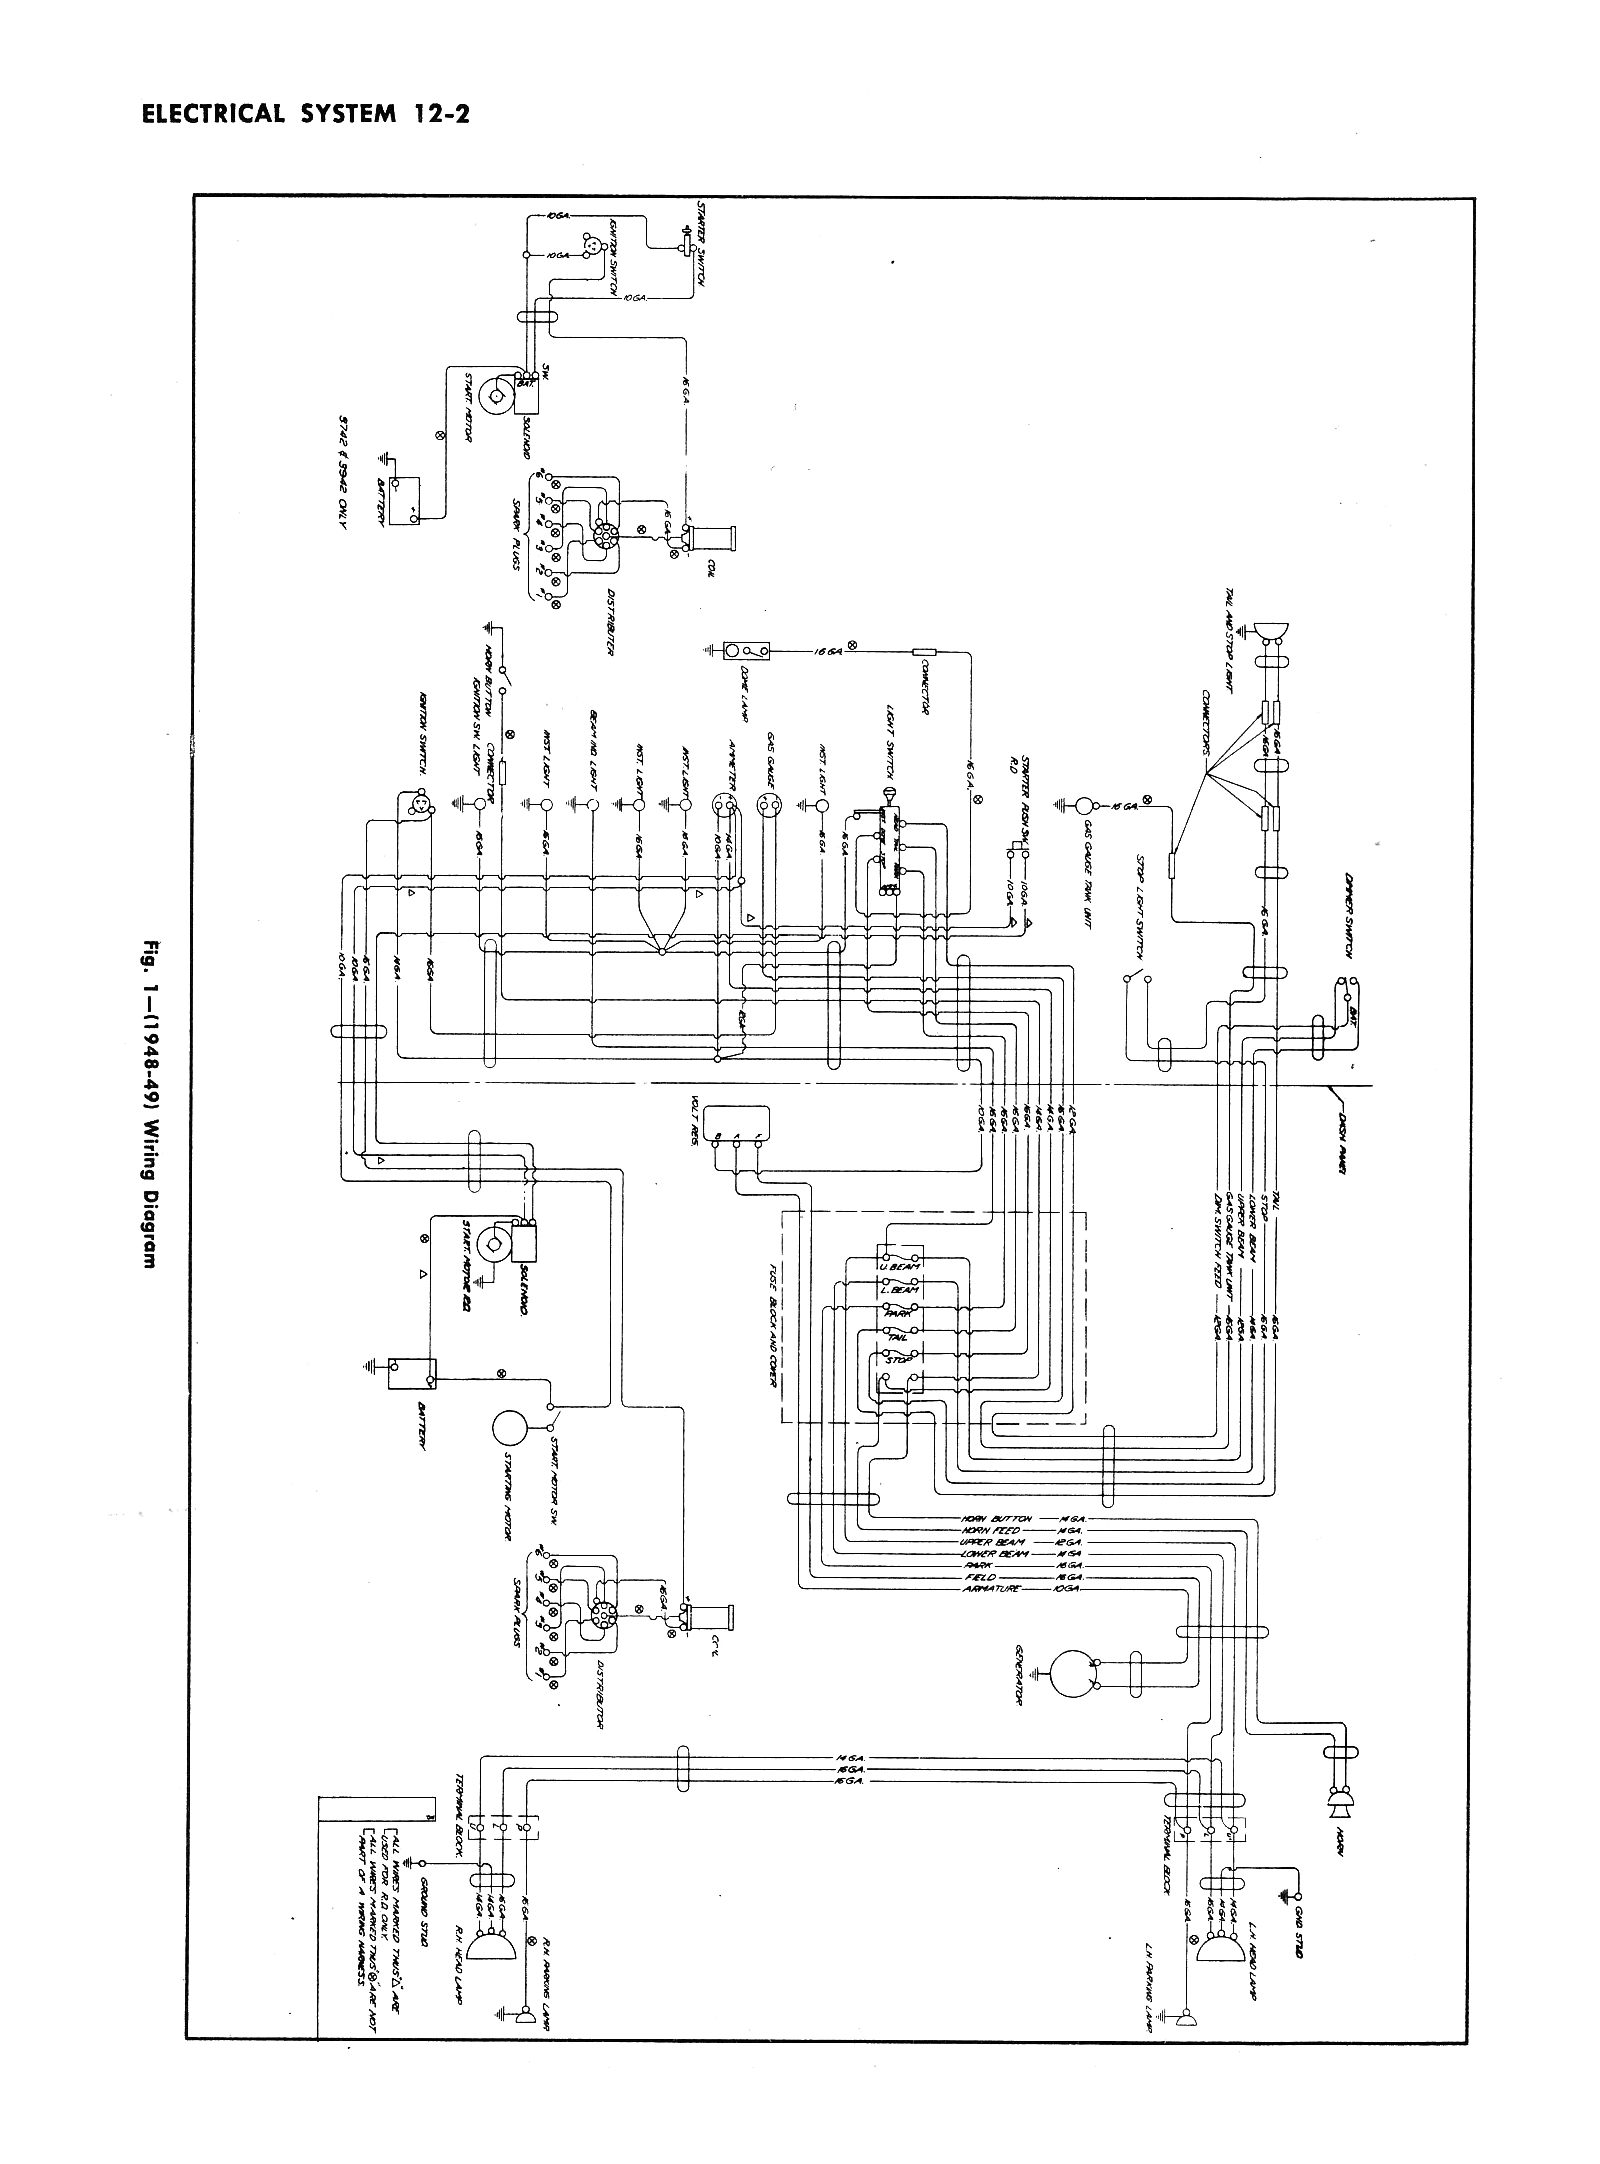 1949 Chevrolet Wiring Diagram additionally 1950 Ford Coupe Wiring Diagram moreover 51 Mercury Wiring Diagram furthermore 1948 1950 Ford Truck Herter Wiring Diagram additionally 1952 Ford Pickup Wiring Diagram. on 1951 studebaker wiring diagrams